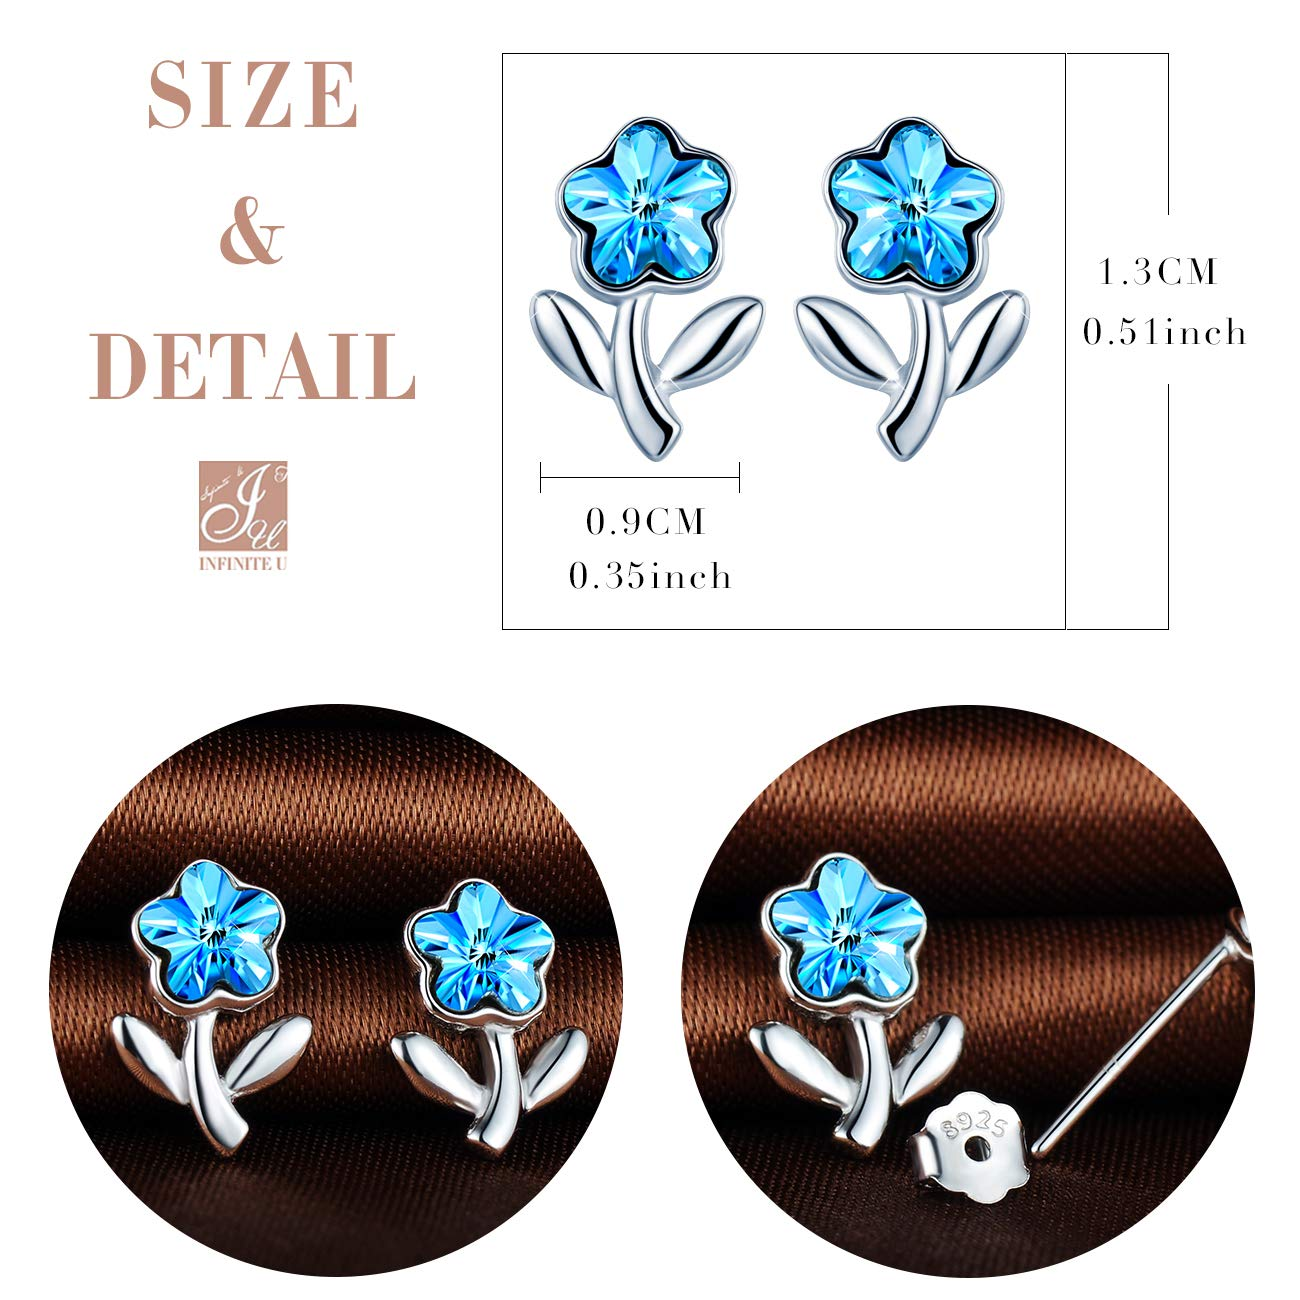 Inifinite U 925 Sterling Silver Stud Earrings Rose with Blue Crystal for Girls